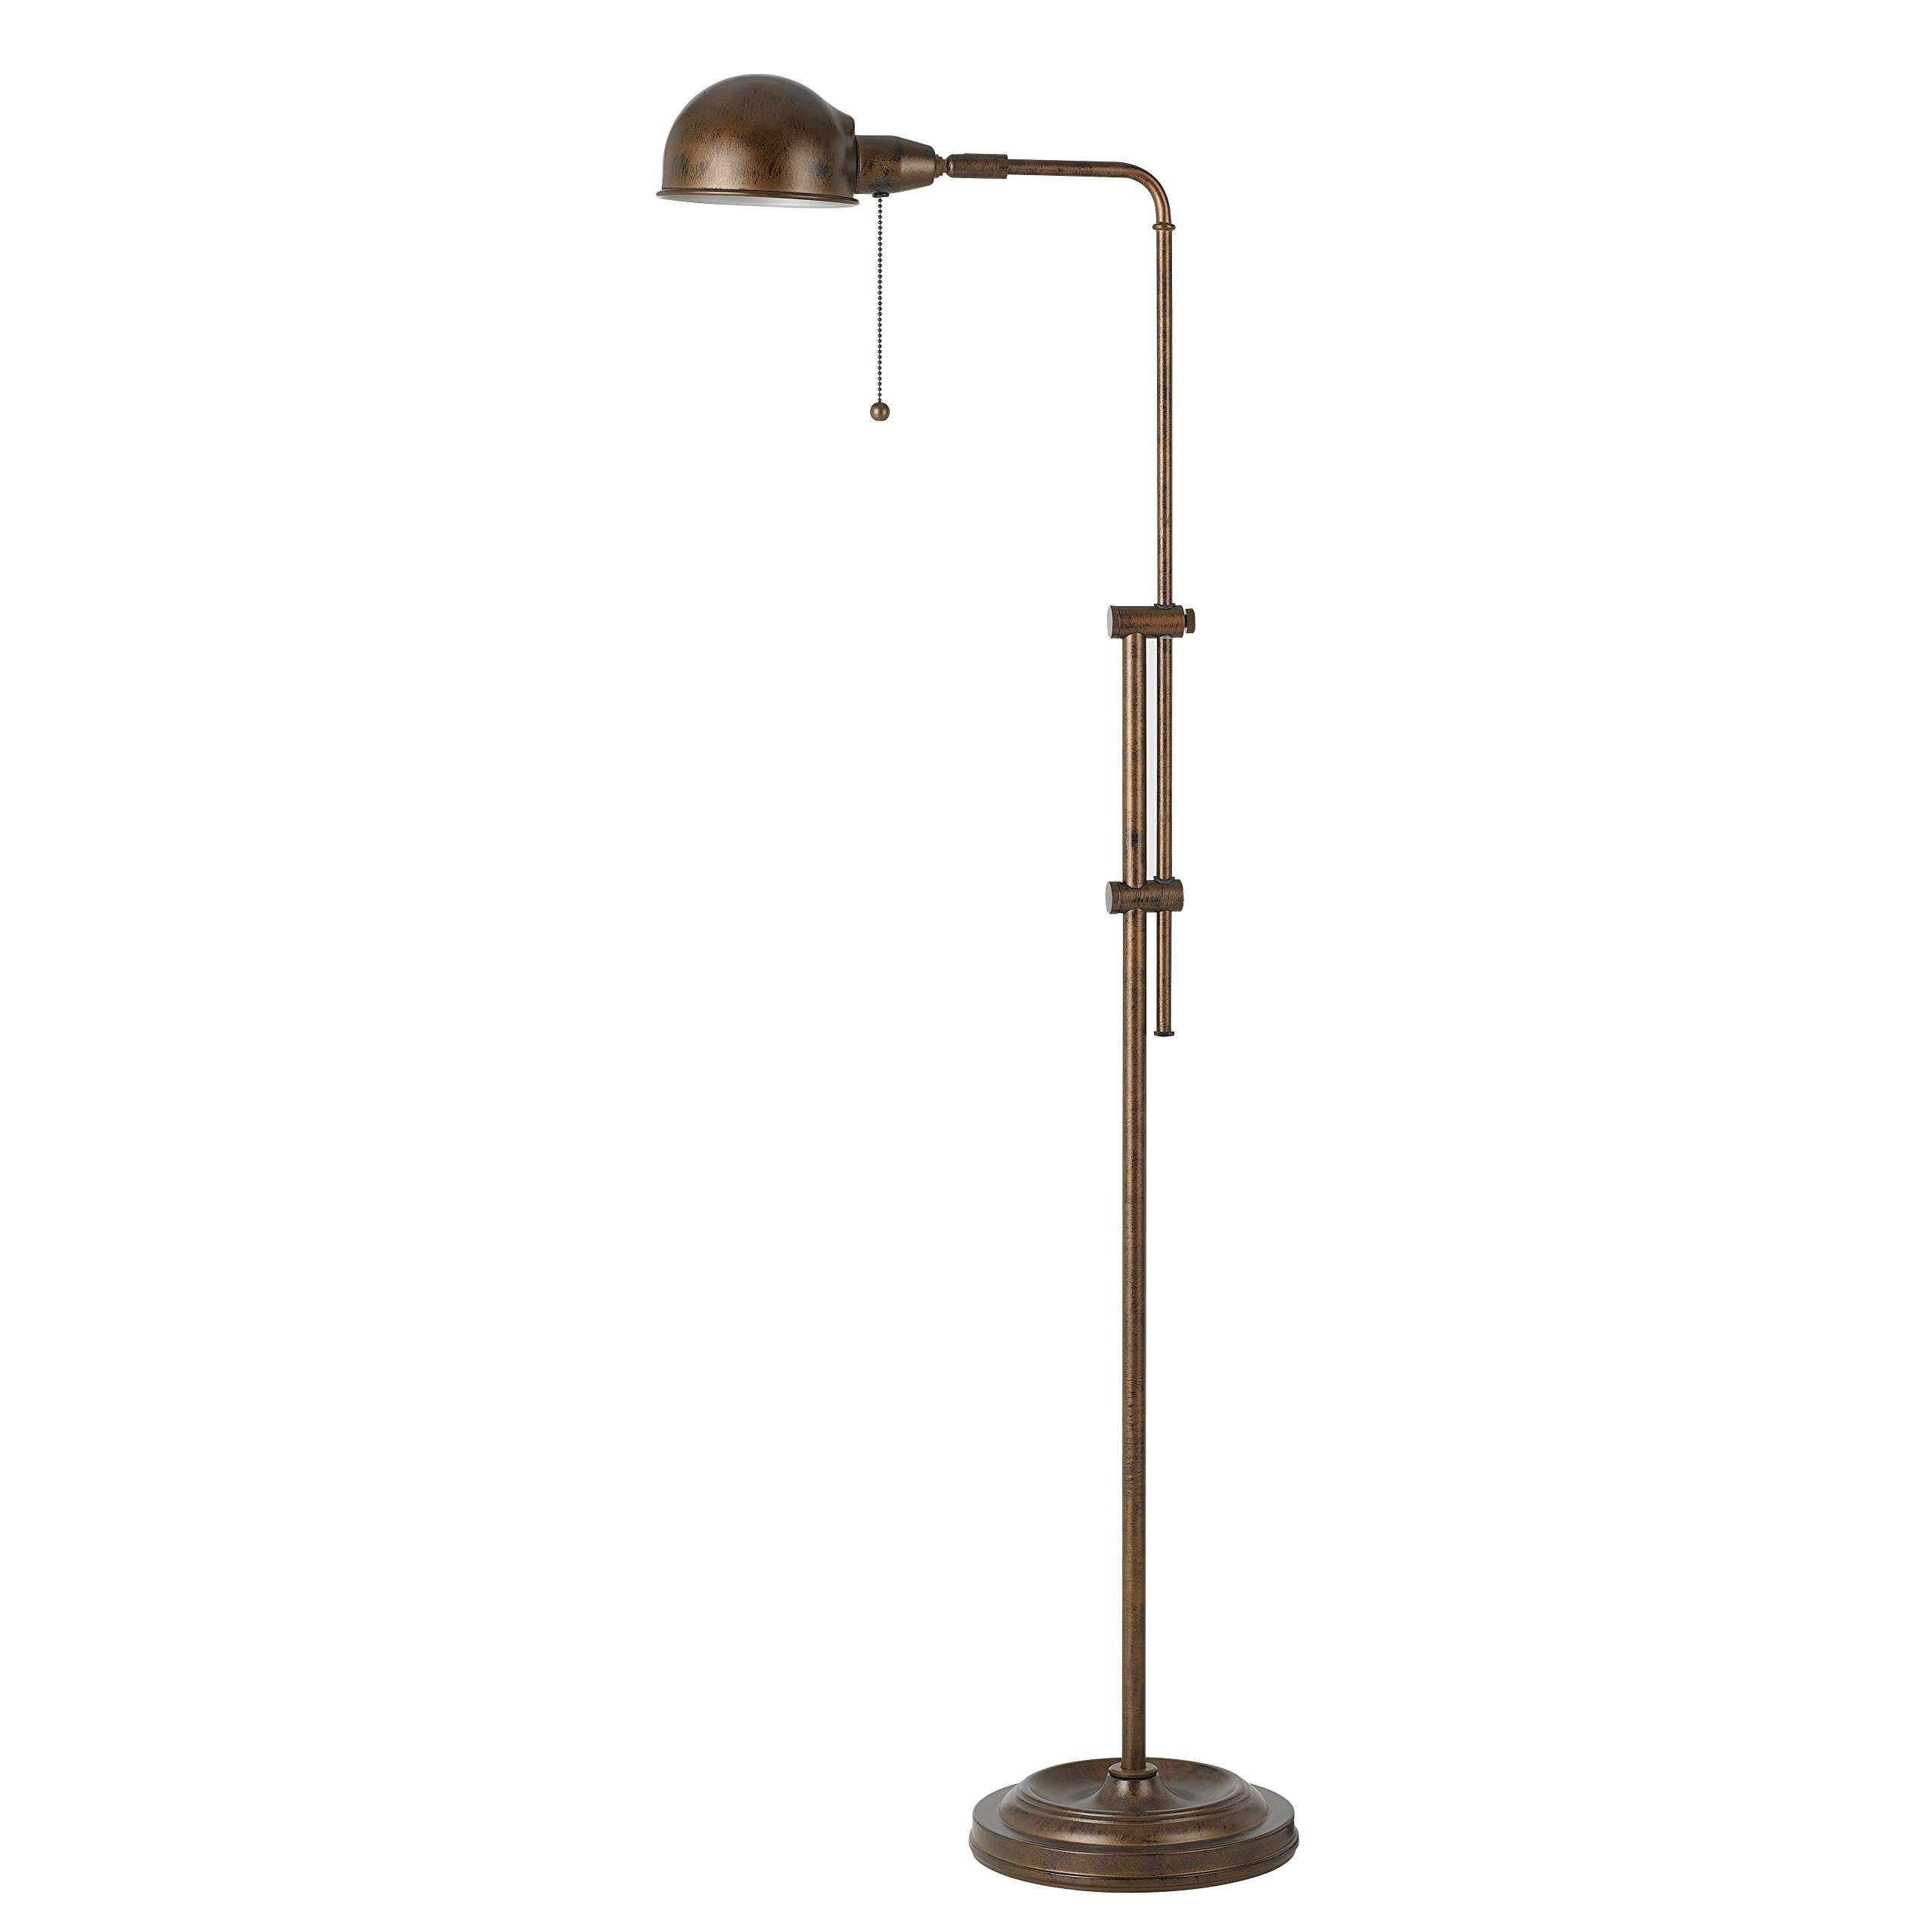 58-Inch Rustic Adjustable Pharmacy Floor Lamp with Pull-Chain Switch for Reading Corner - Rust Finish